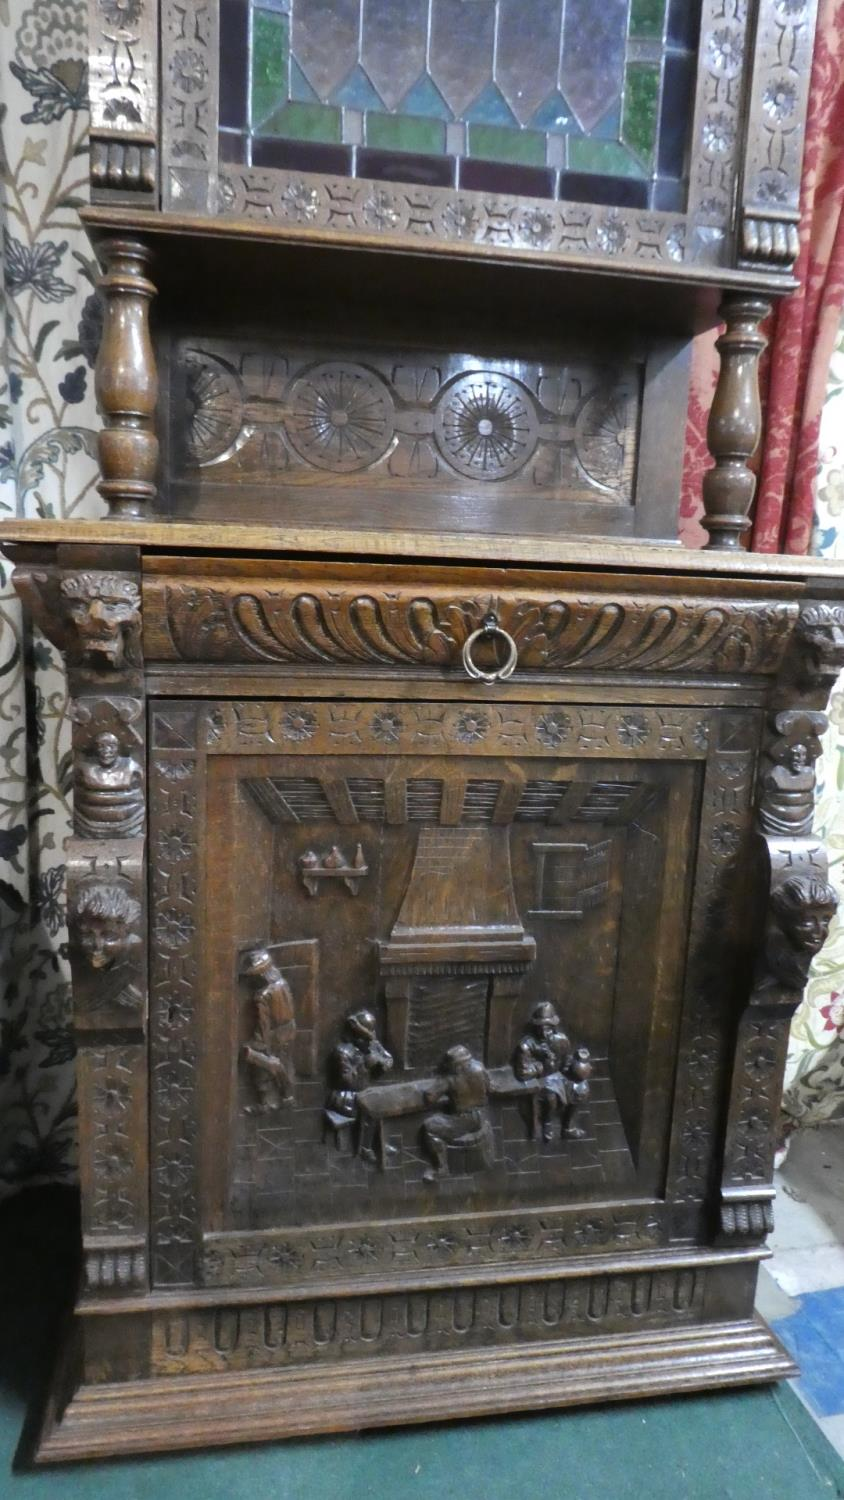 Lot 470 - A Continental Carved Oak Gothic Style Double Freestanding Cabinet with Carved Decoration having